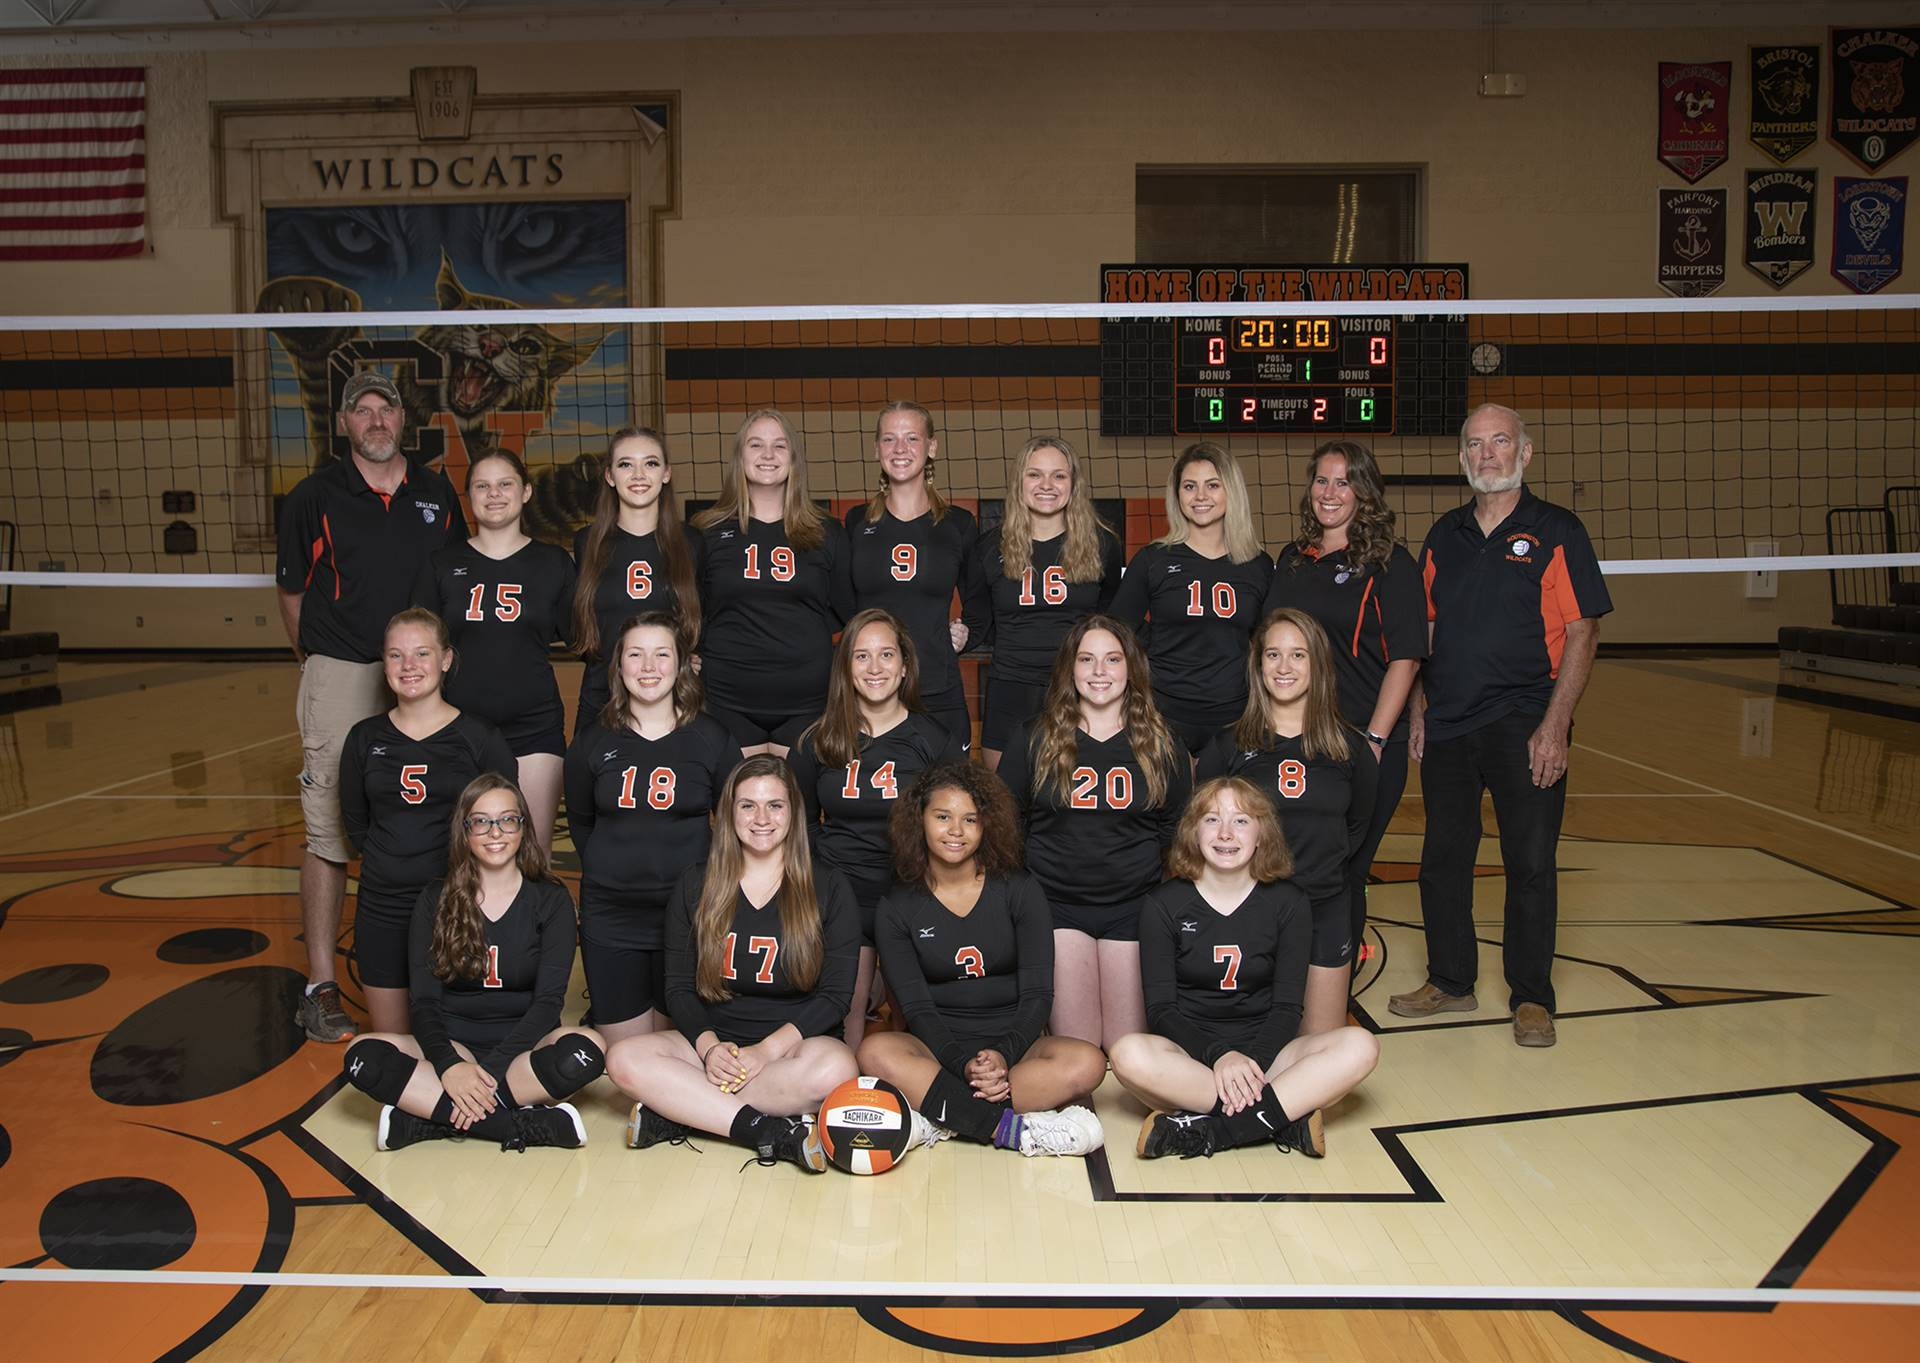 High School Volleyball Team